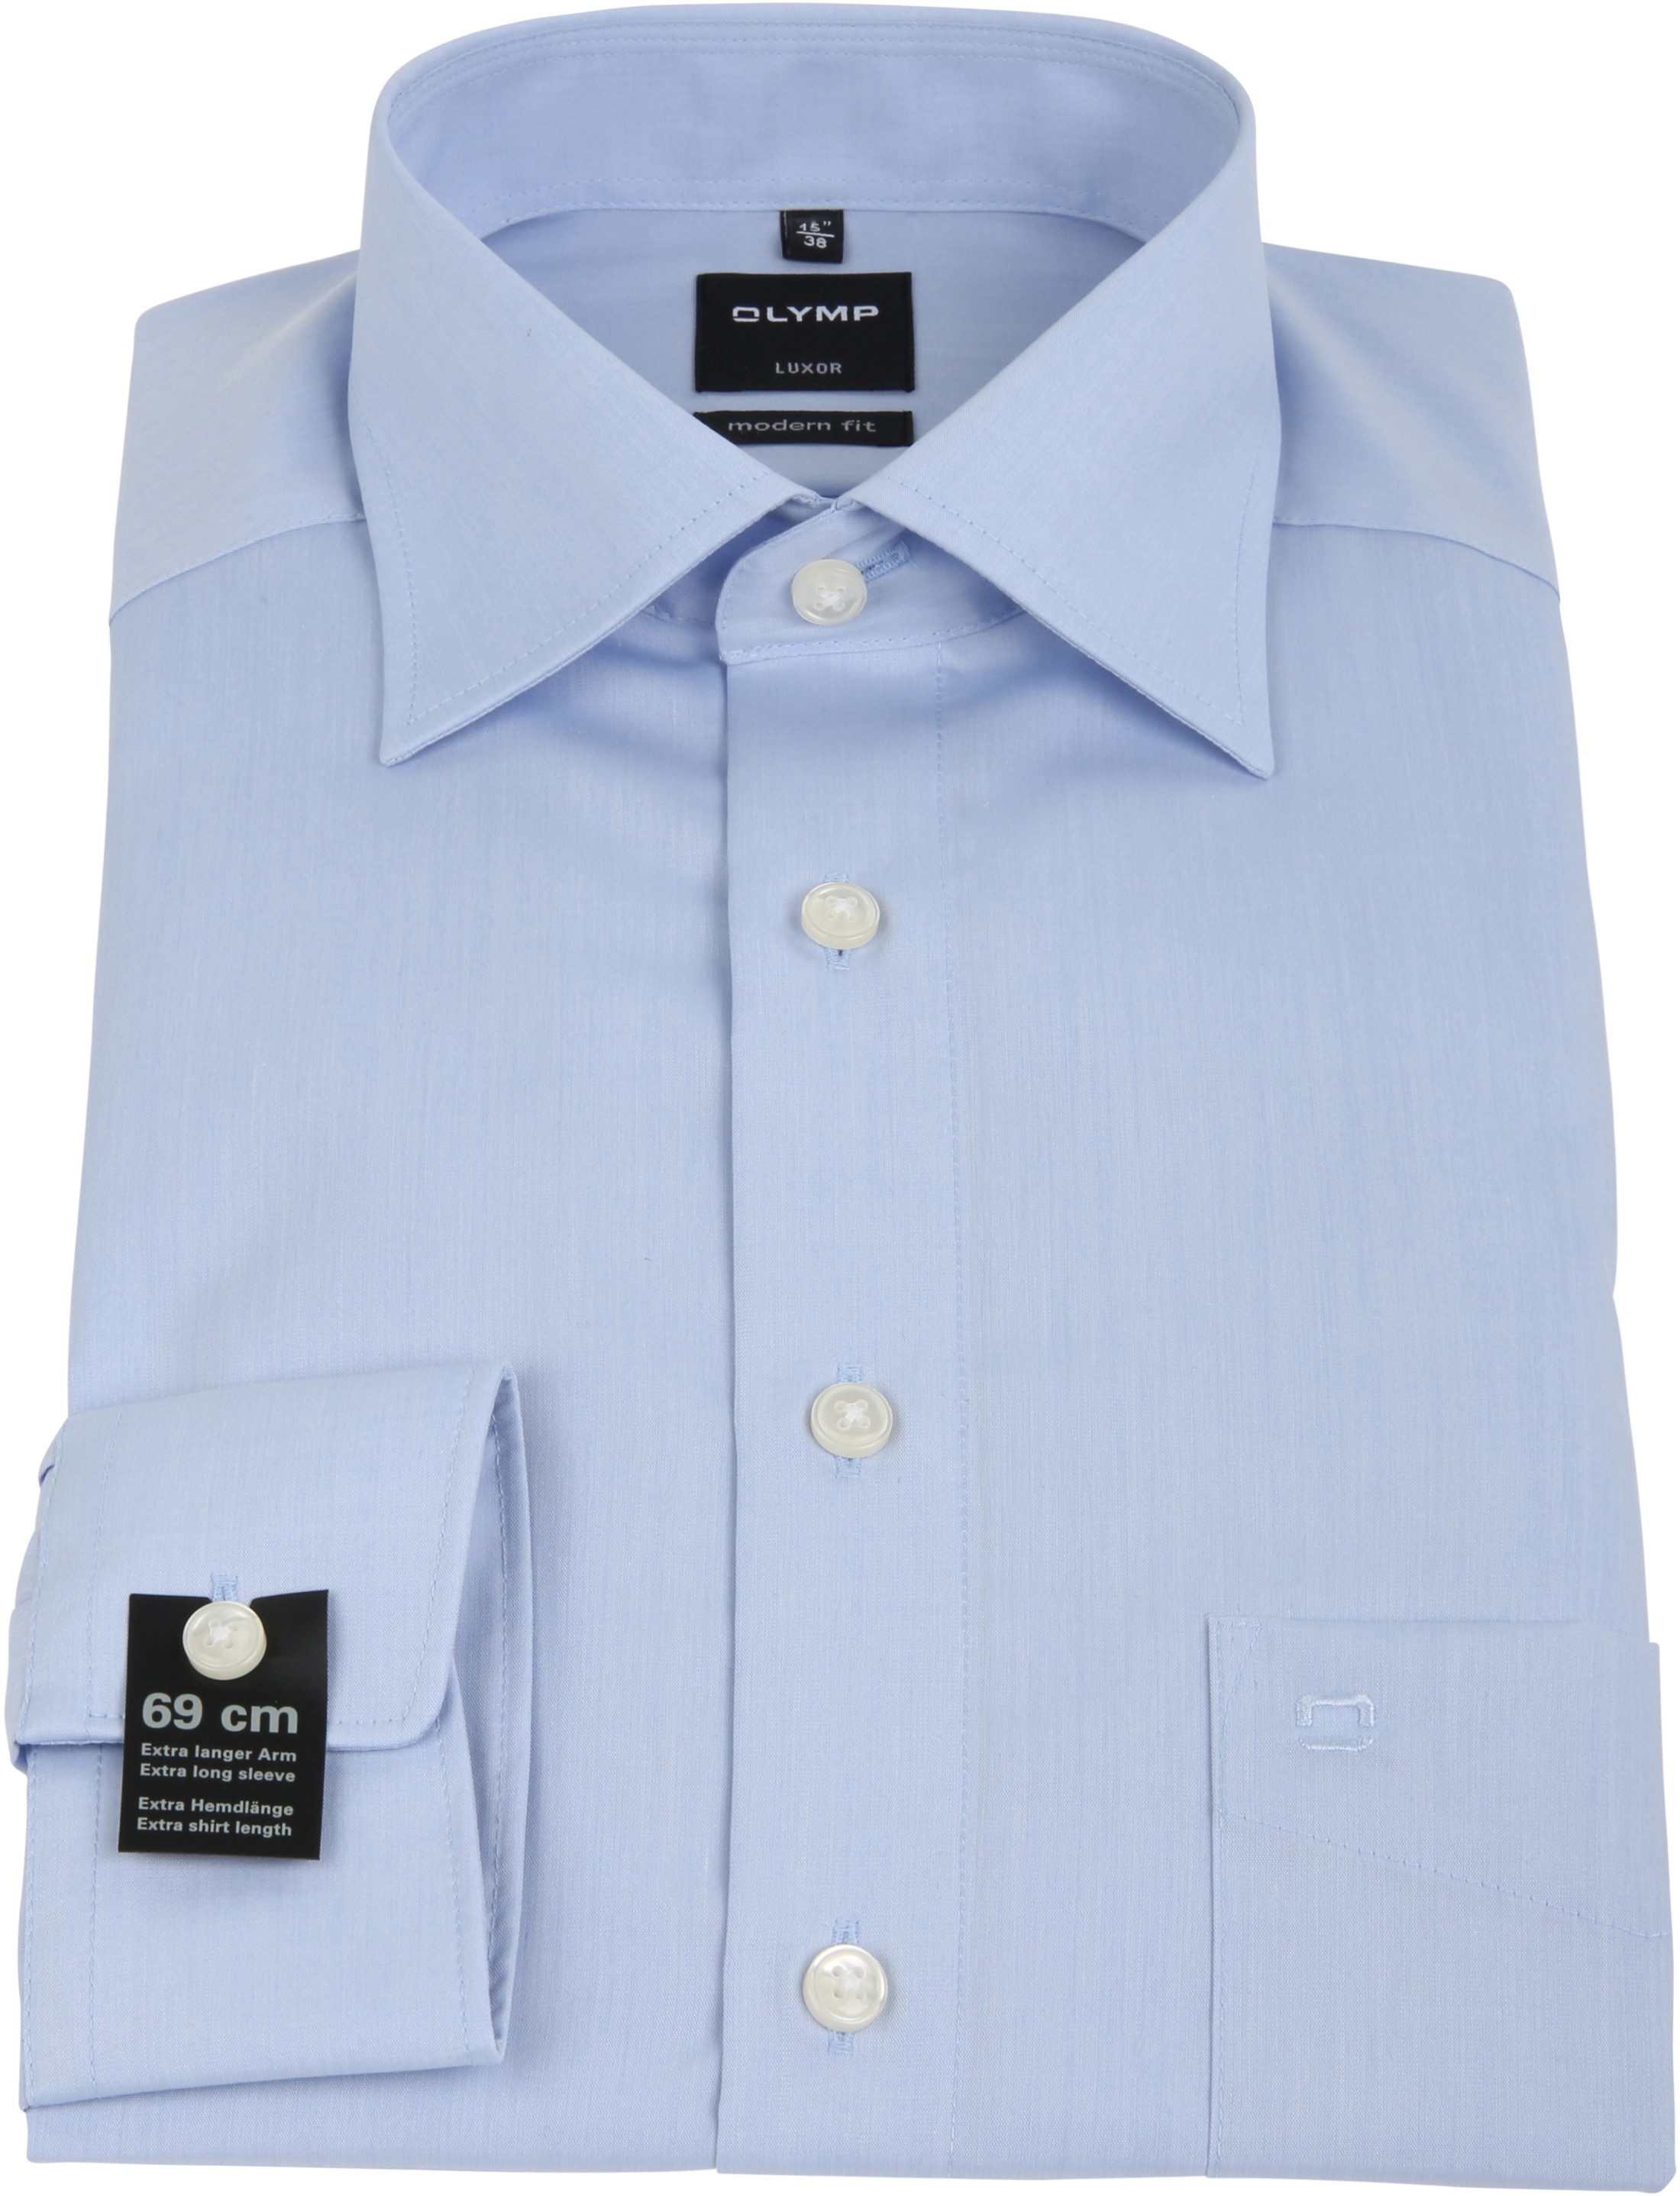 Olymp Luxor Extra Long Sleeve Shirt Blue